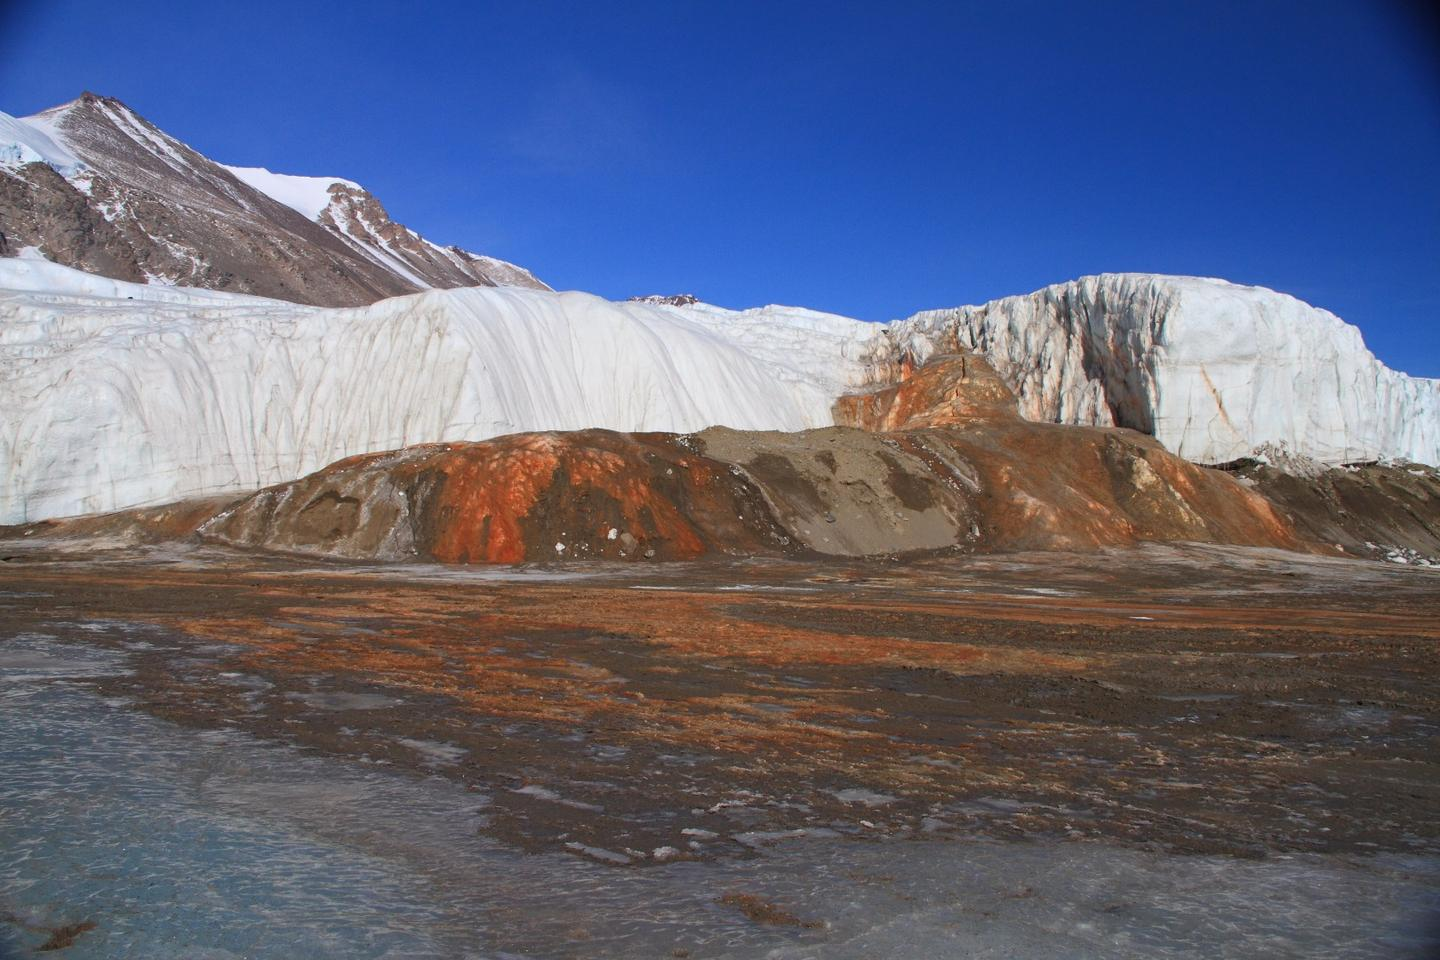 Blood Falls is a famous iron-rich outflow of water that scientists suspected was connected to a water source that may have been trapped under an Antarctic glacier for more than a million years